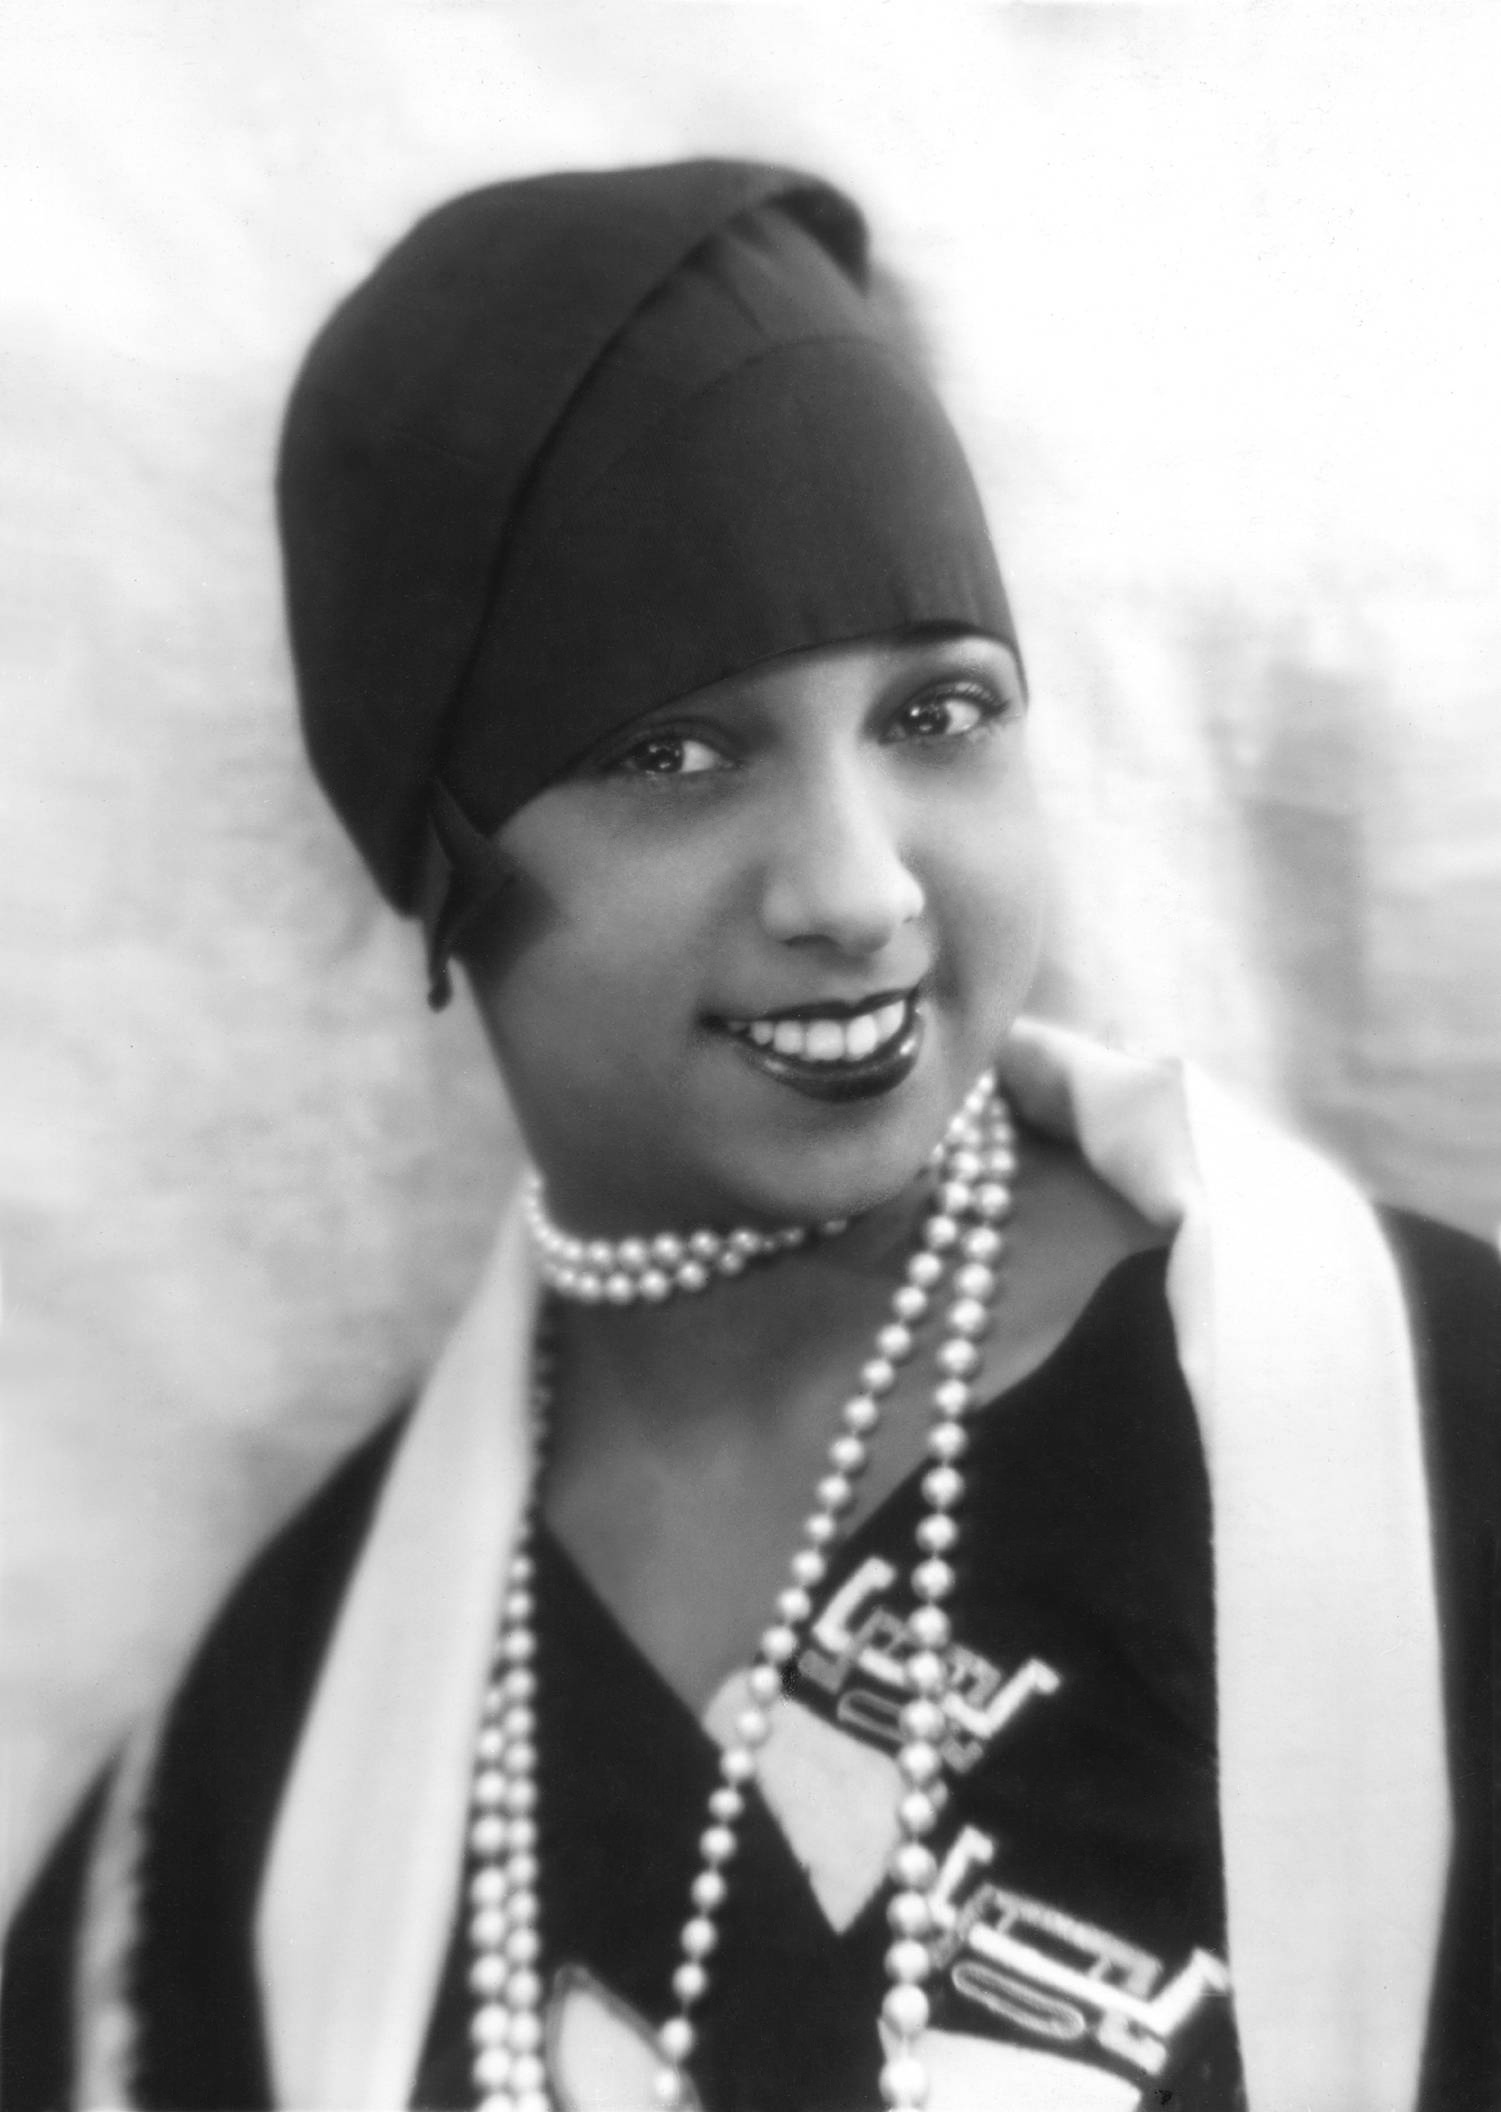 Josephine Baker | Paul Roth's Music Liner Notes Josephine Baker